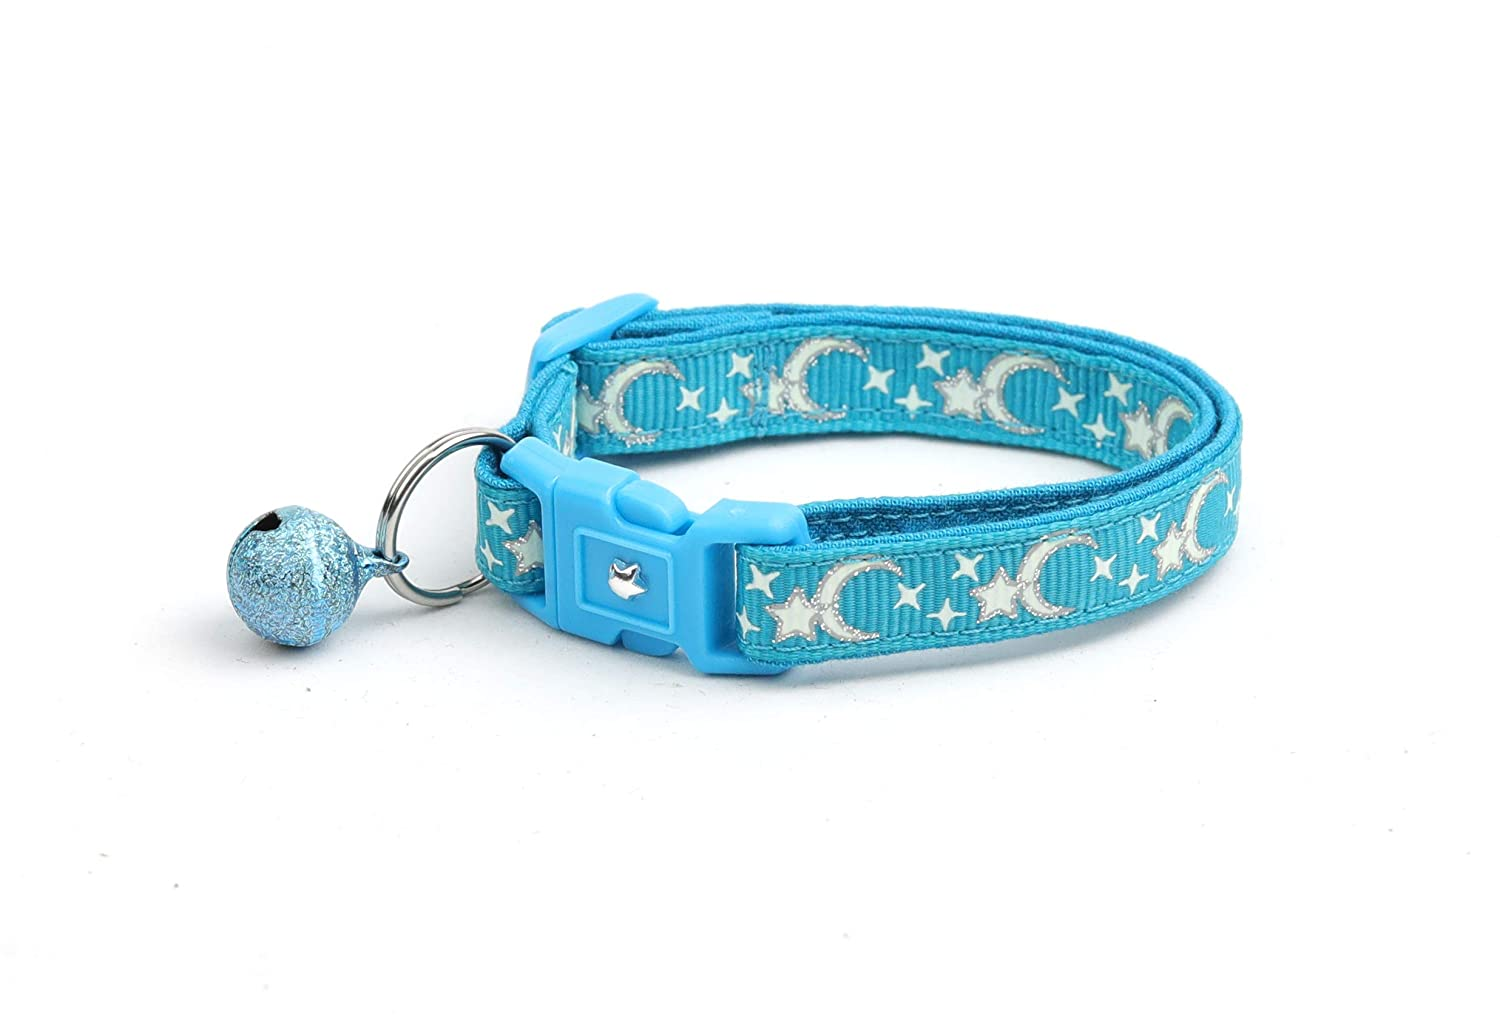 Charm and Bell Breakaway Safety Pugs2Persians Silver Moon and Stars on Turquoise Cat Collar Glow in the Dark